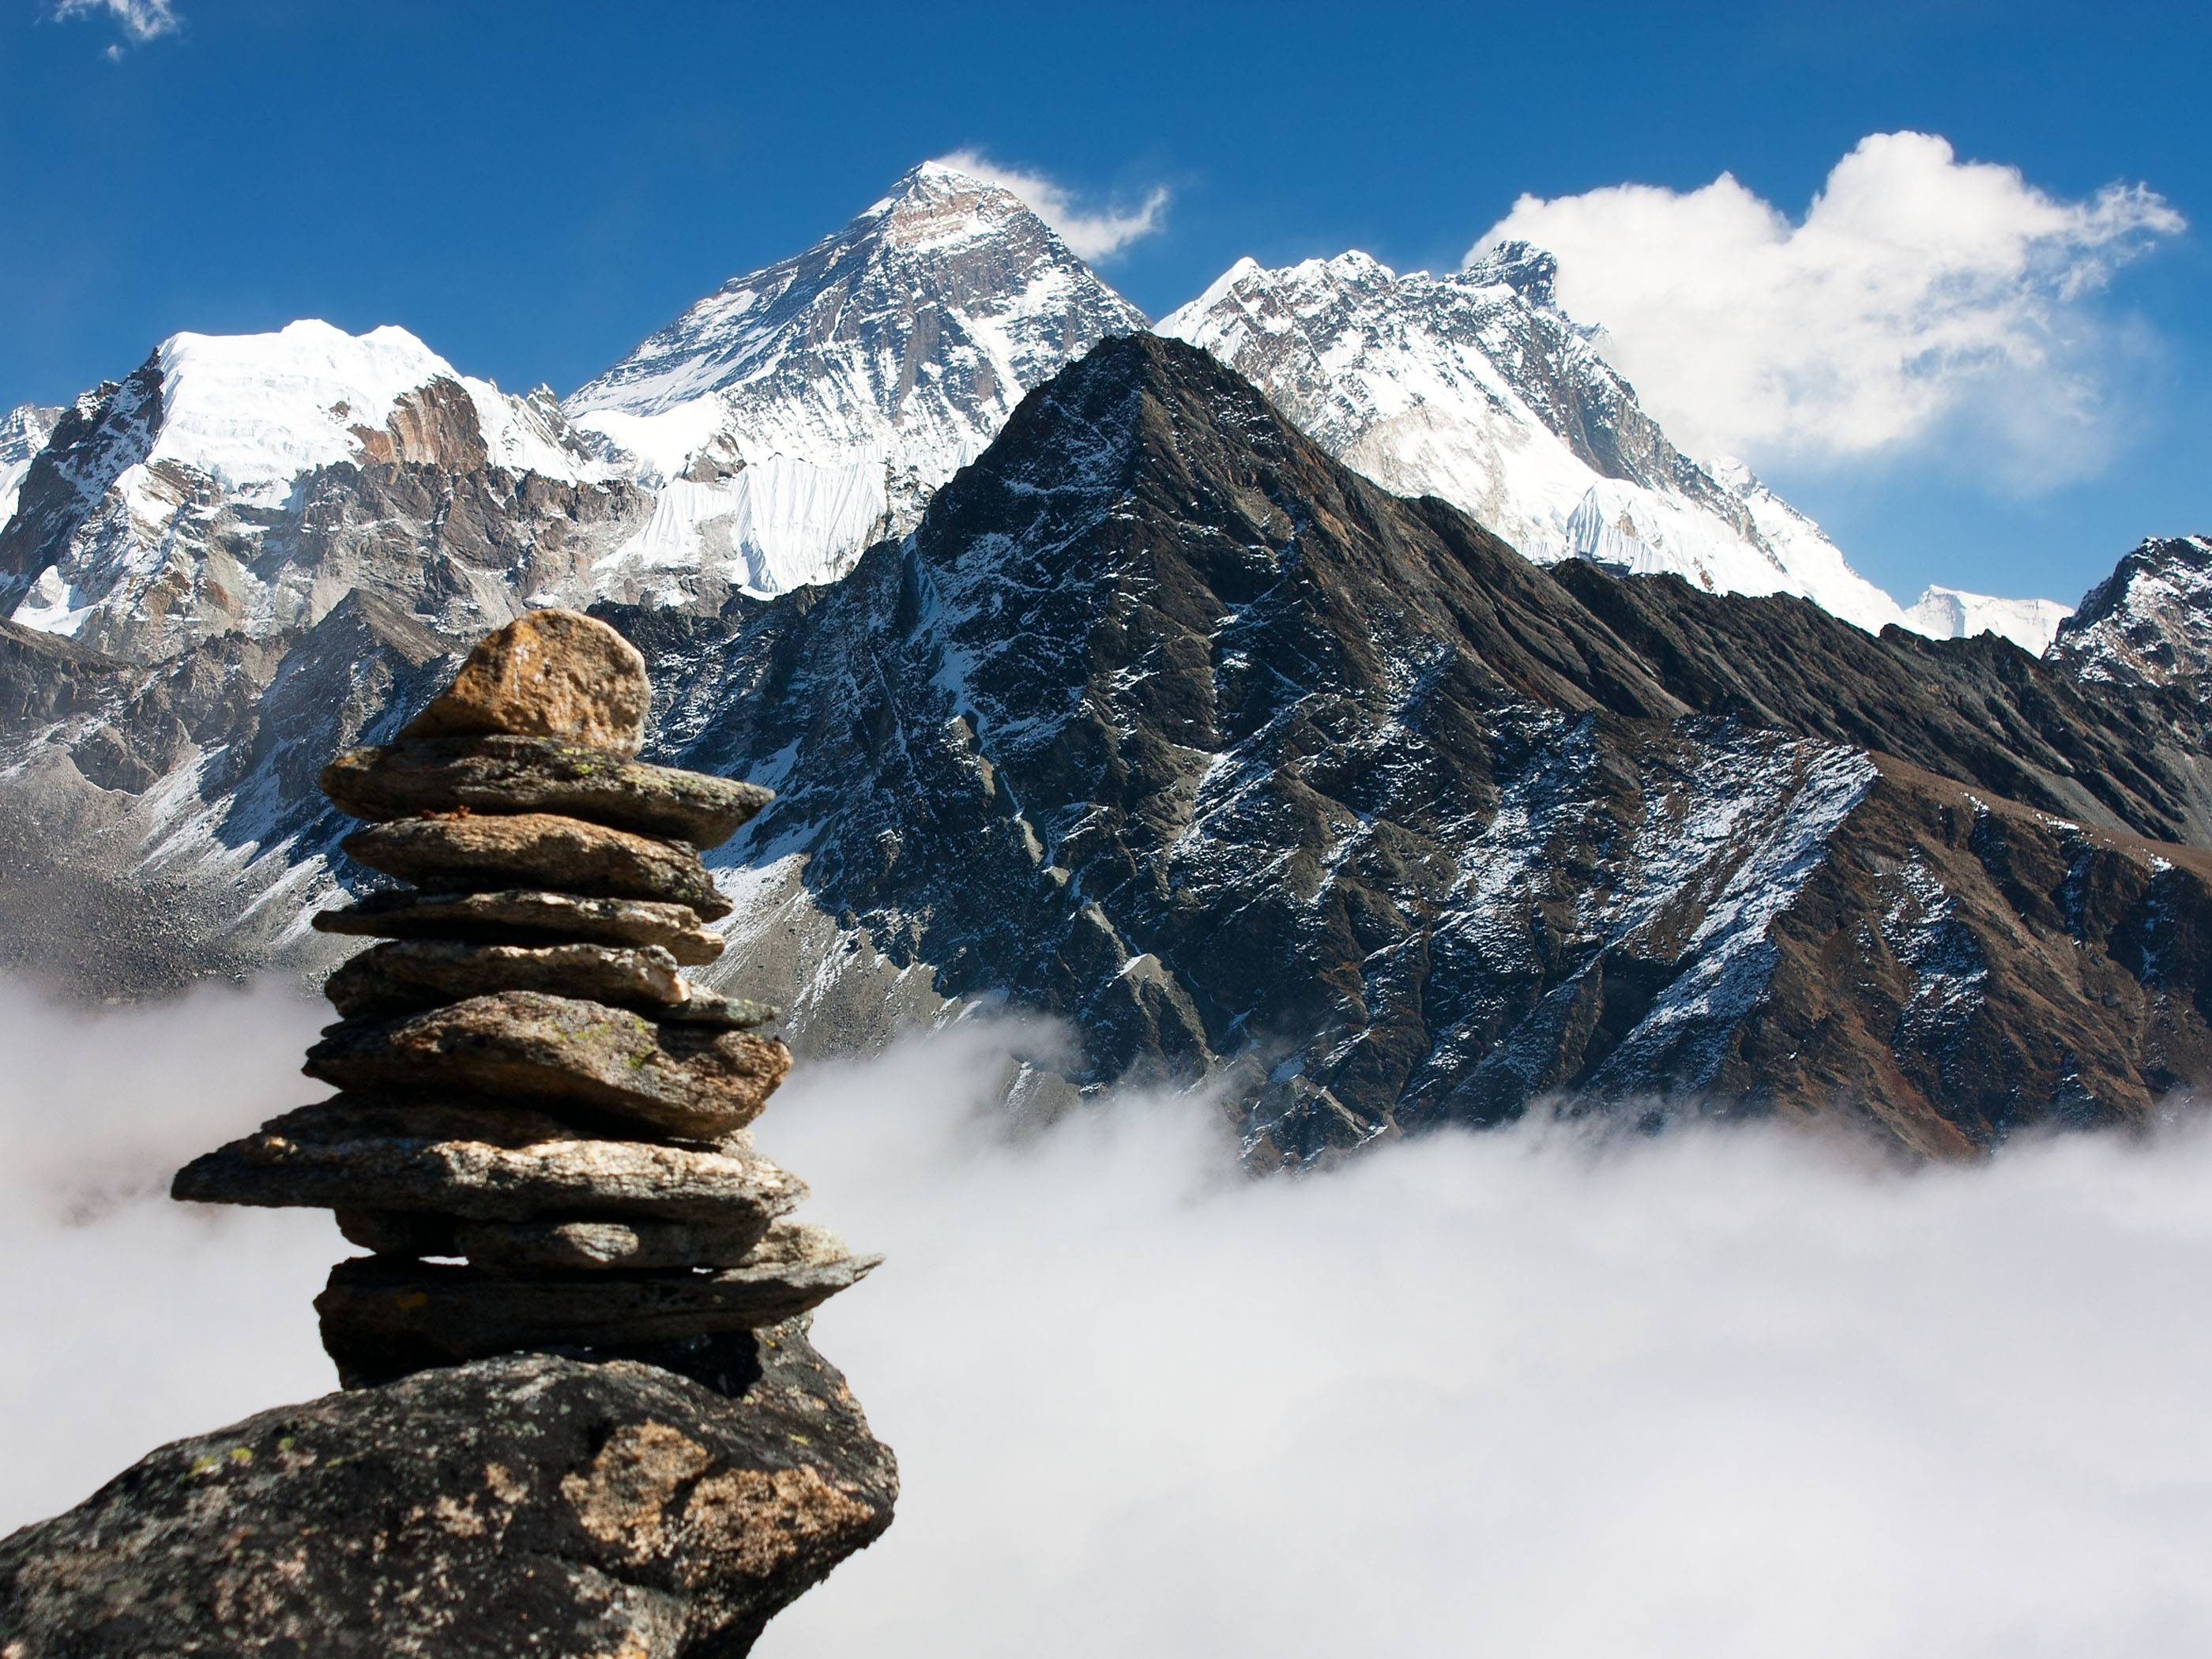 Mount Everest Wallpapers | Free Desk Wallpapers